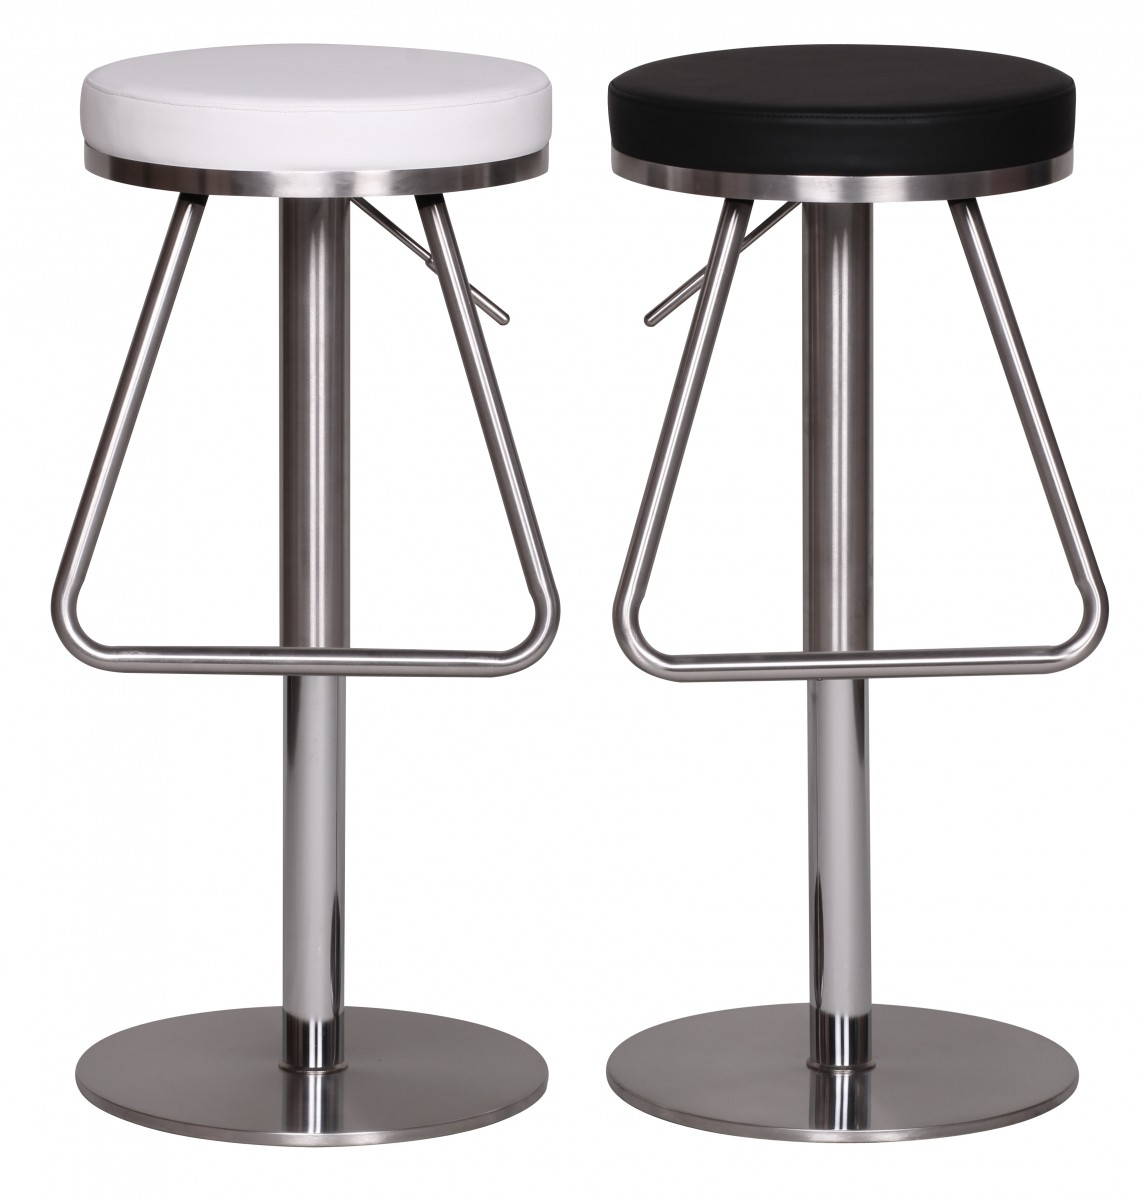 Stainless Bar Stools Bar Stool Stainless Steel Brushed Faux Leather Swivel